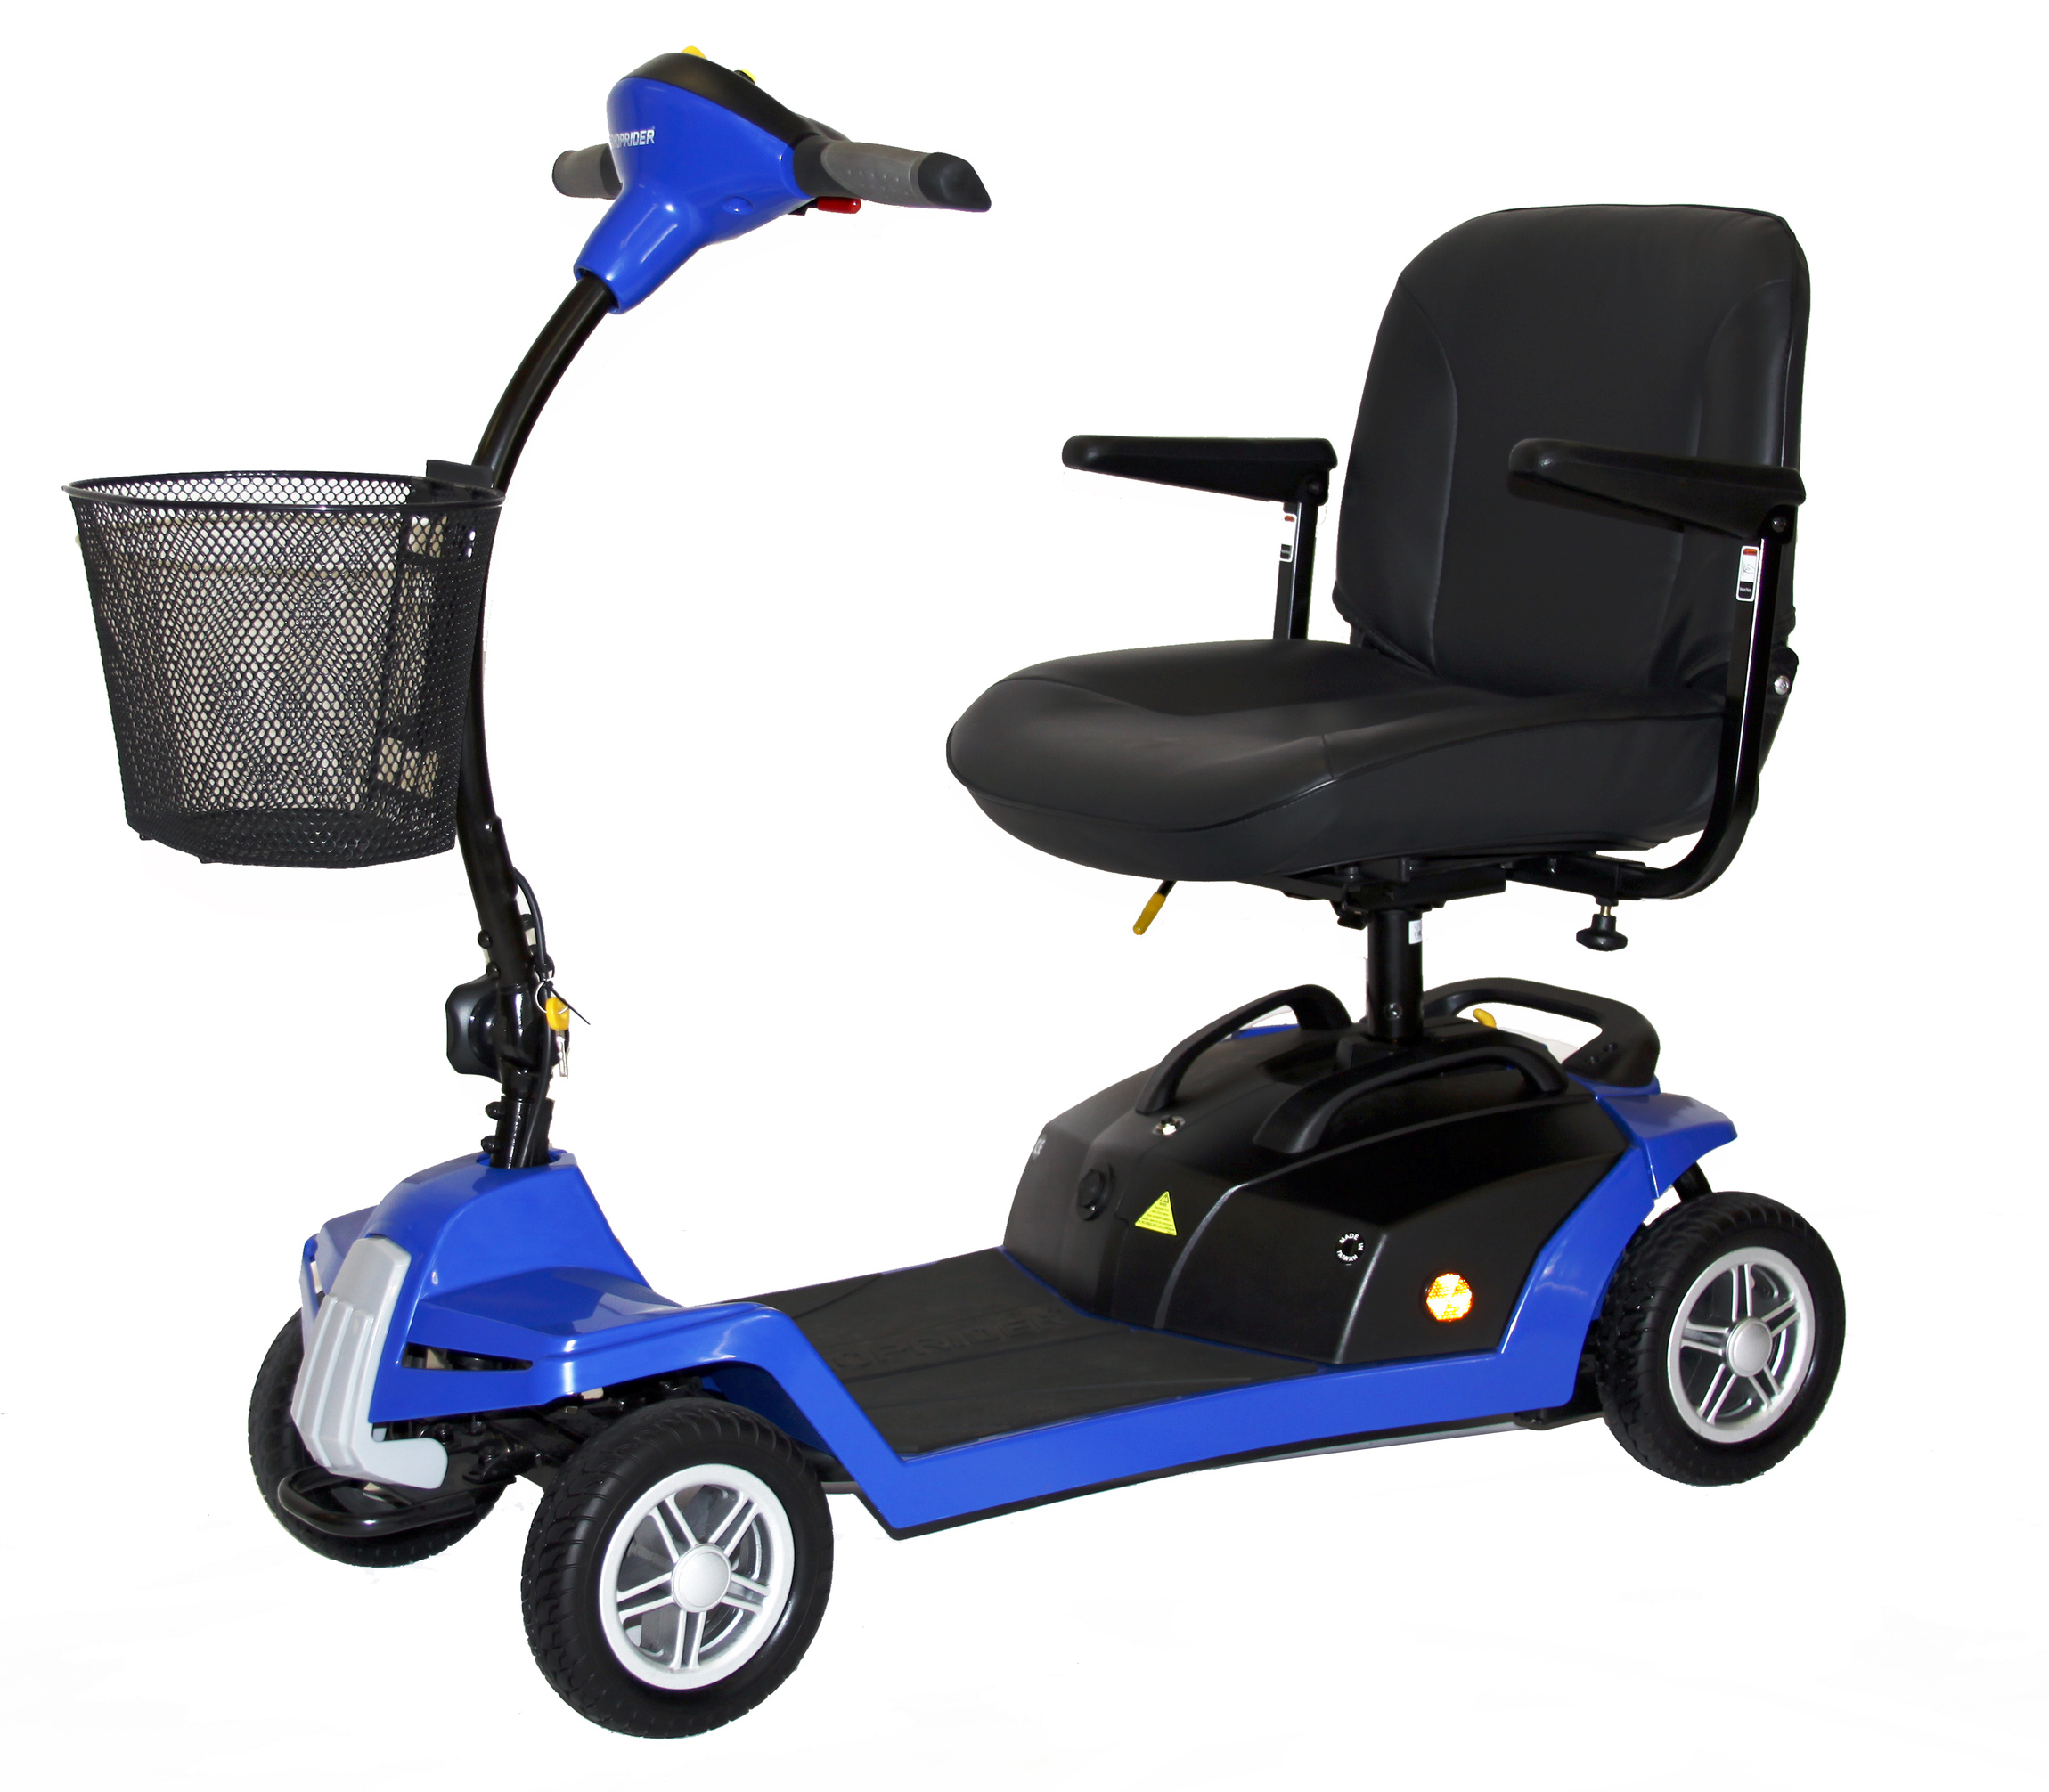 Shoprider Parts All Mobility Brands Mobility Scooter